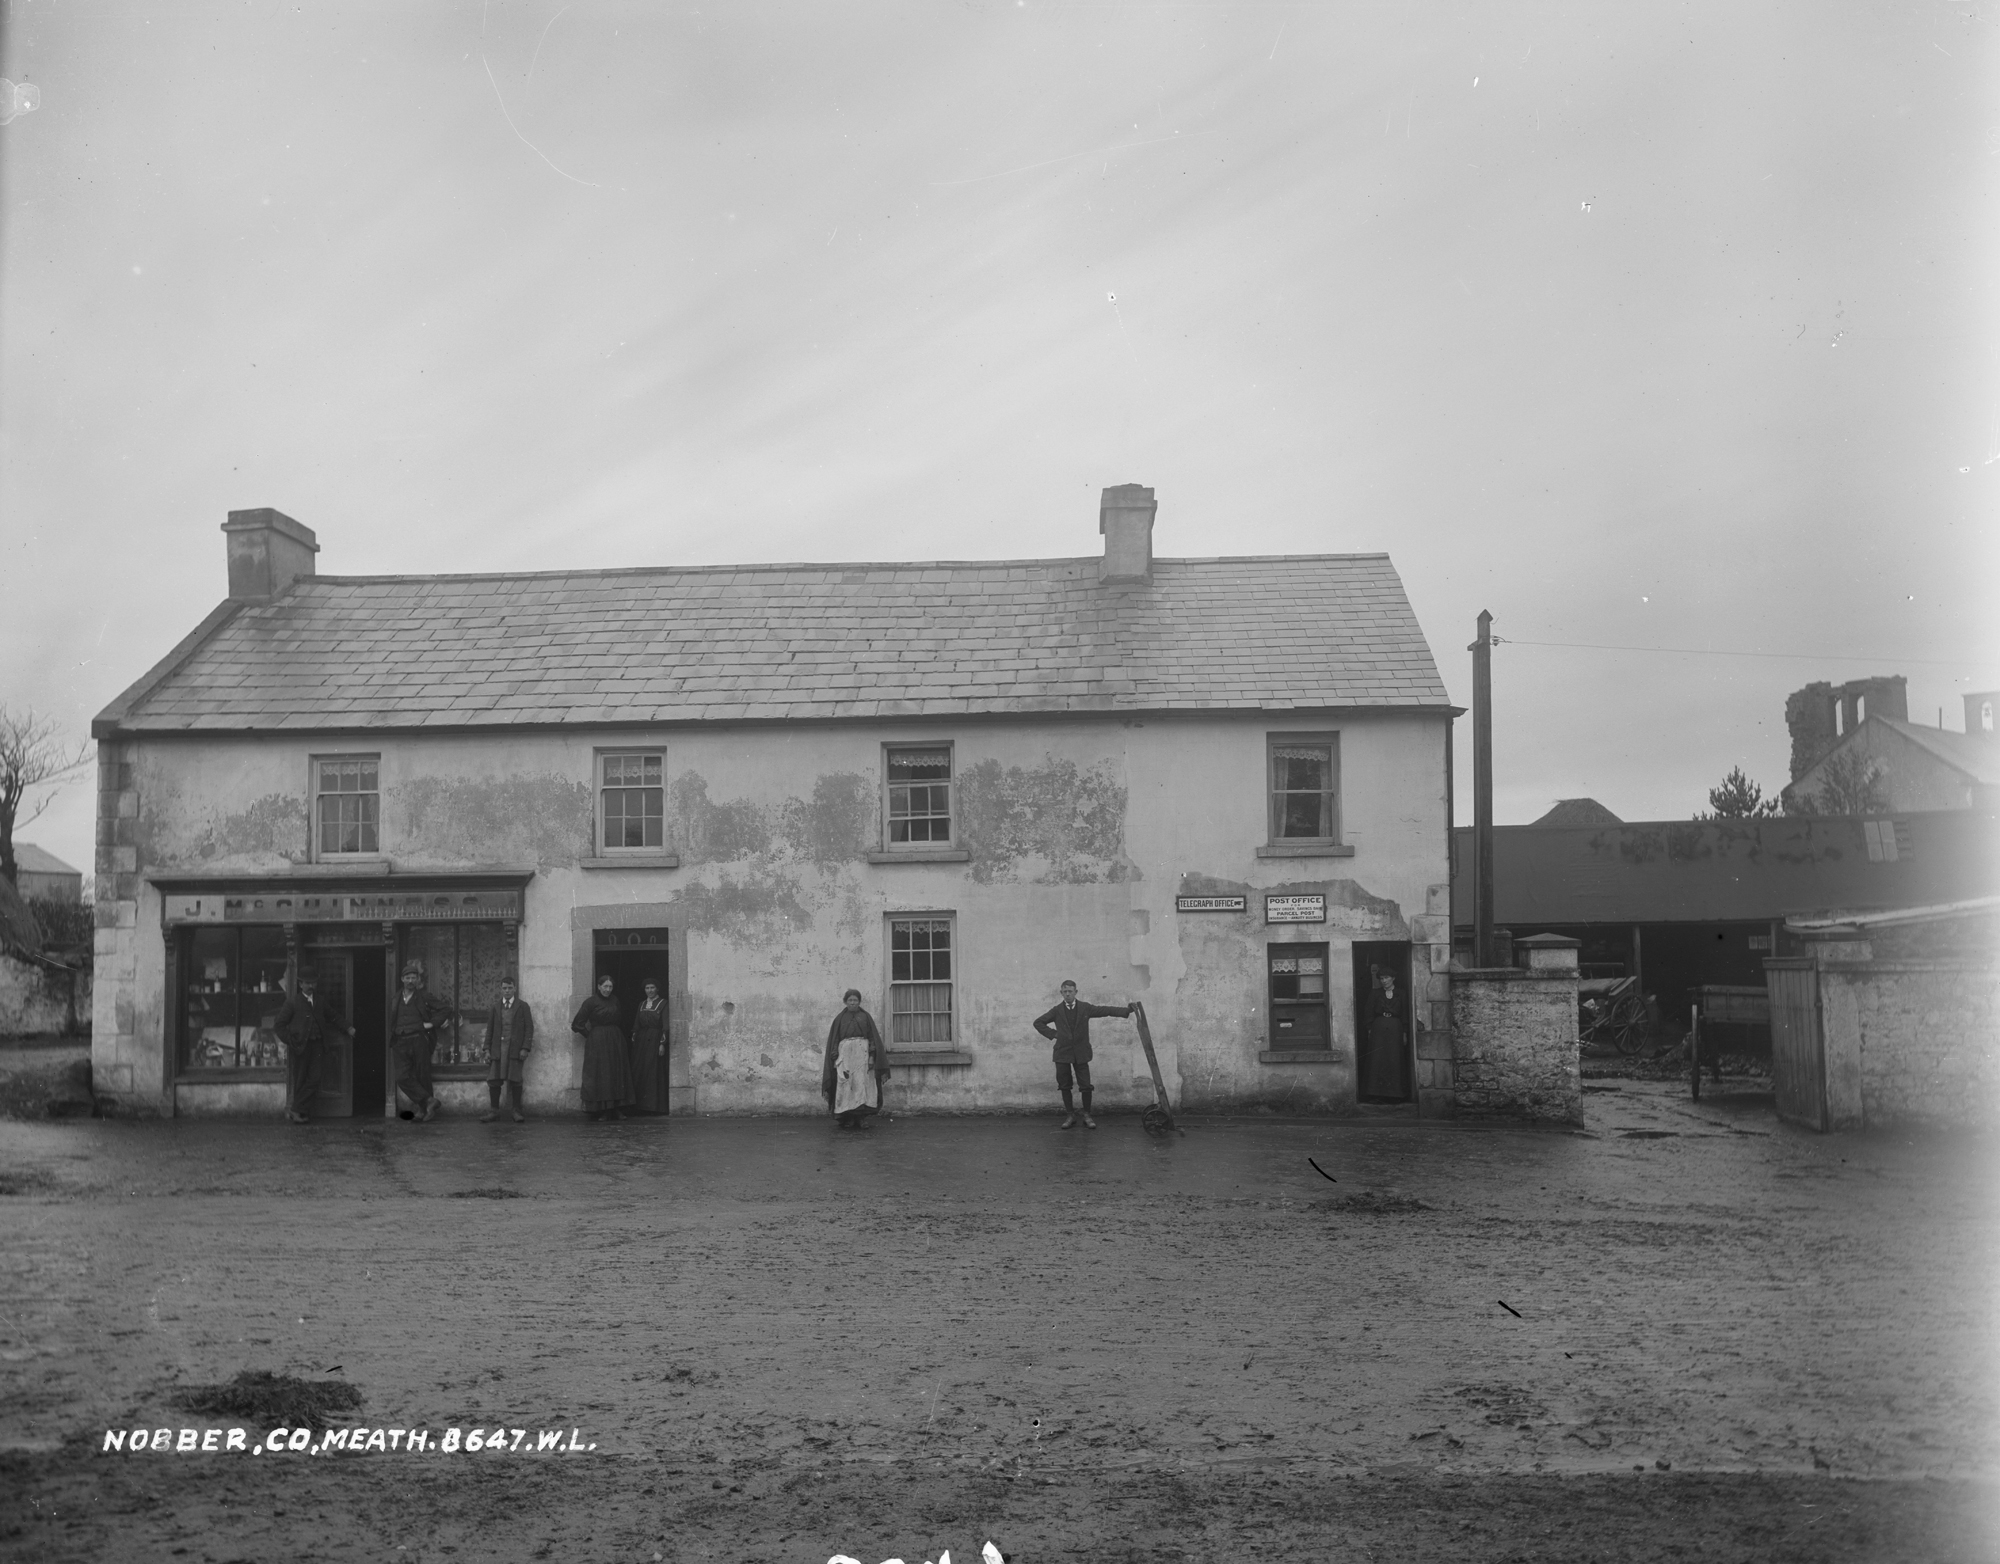 McGuinness's Shop, Nobber, Co. Meath